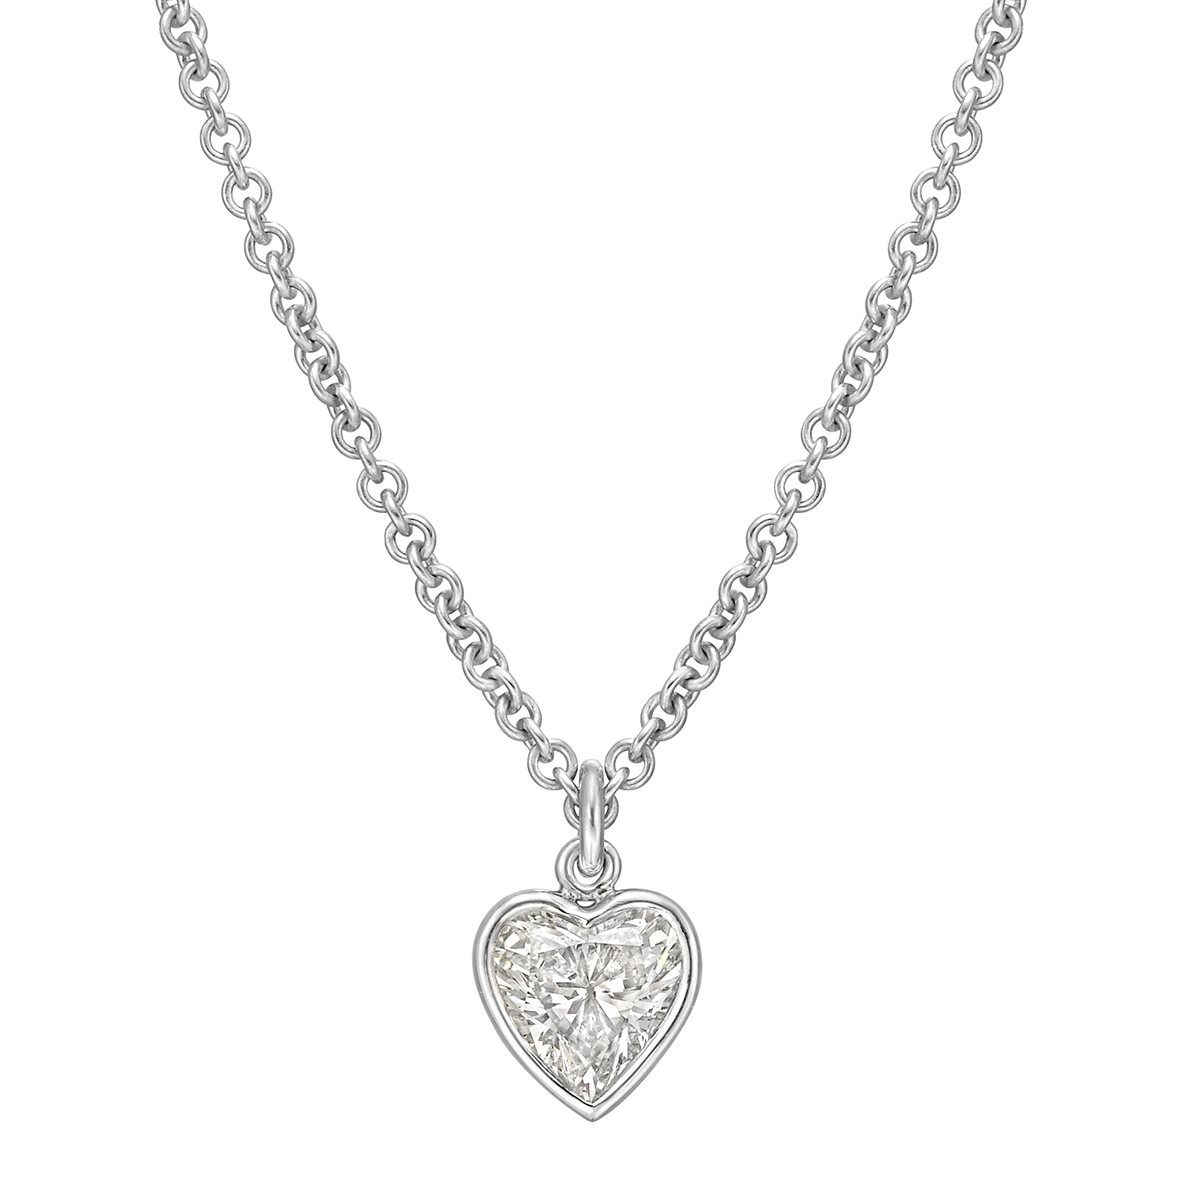 1.67 Carat Heart Brilliant-Cut Diamond Solitaire Pendant